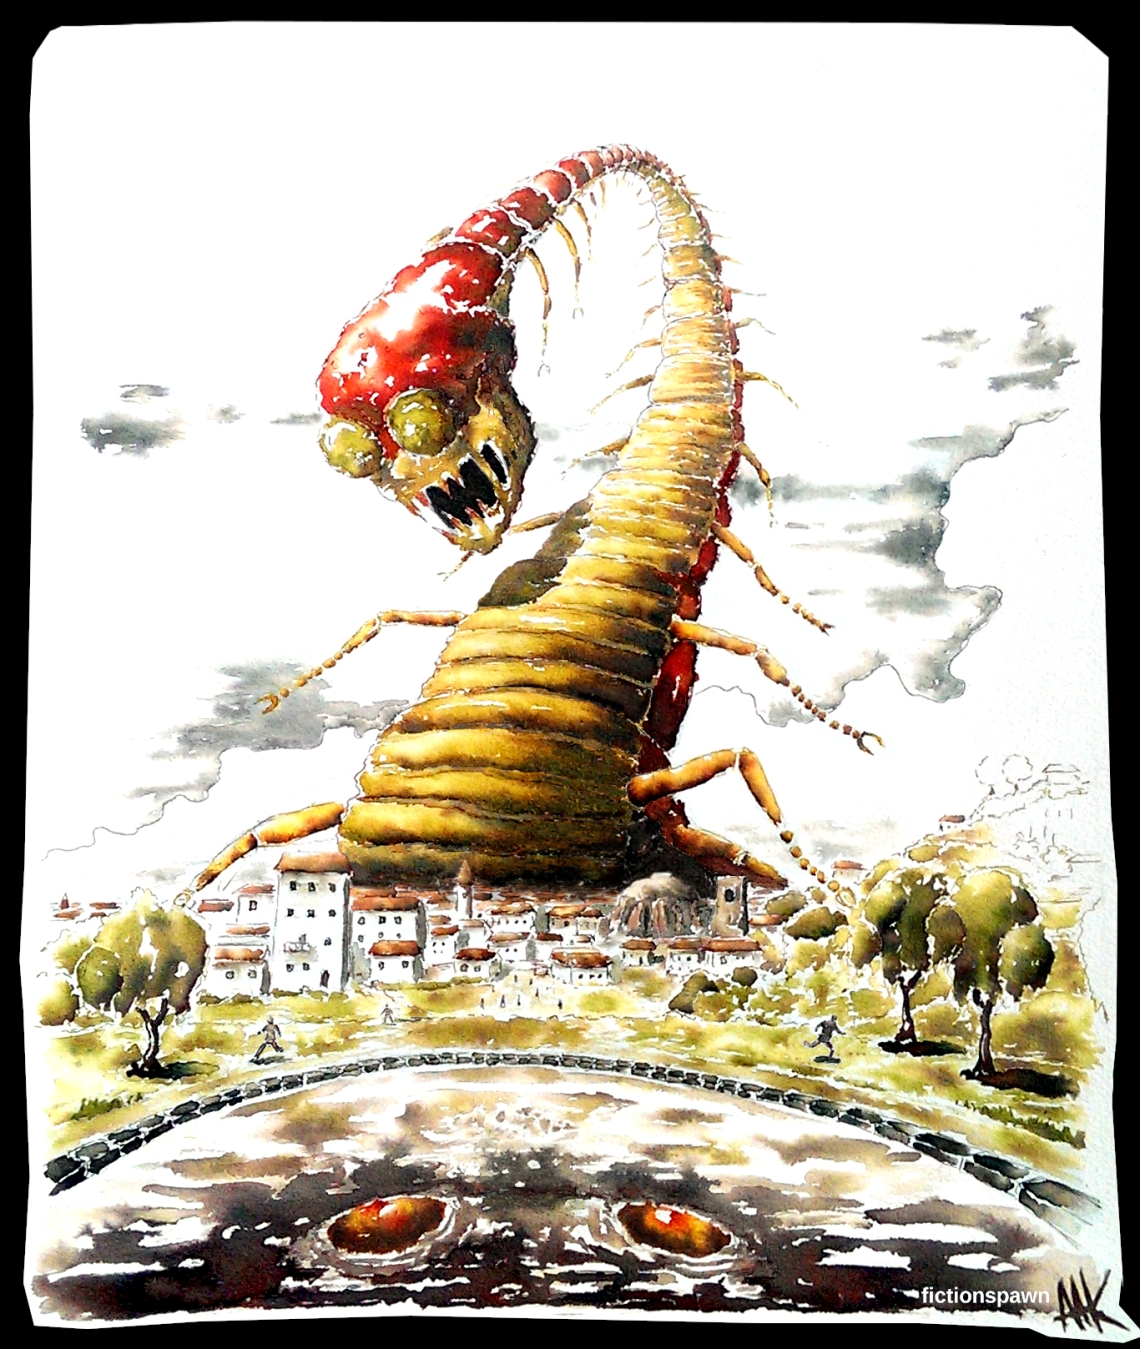 An arthropod monster attacks a city. Aak fictionpawn